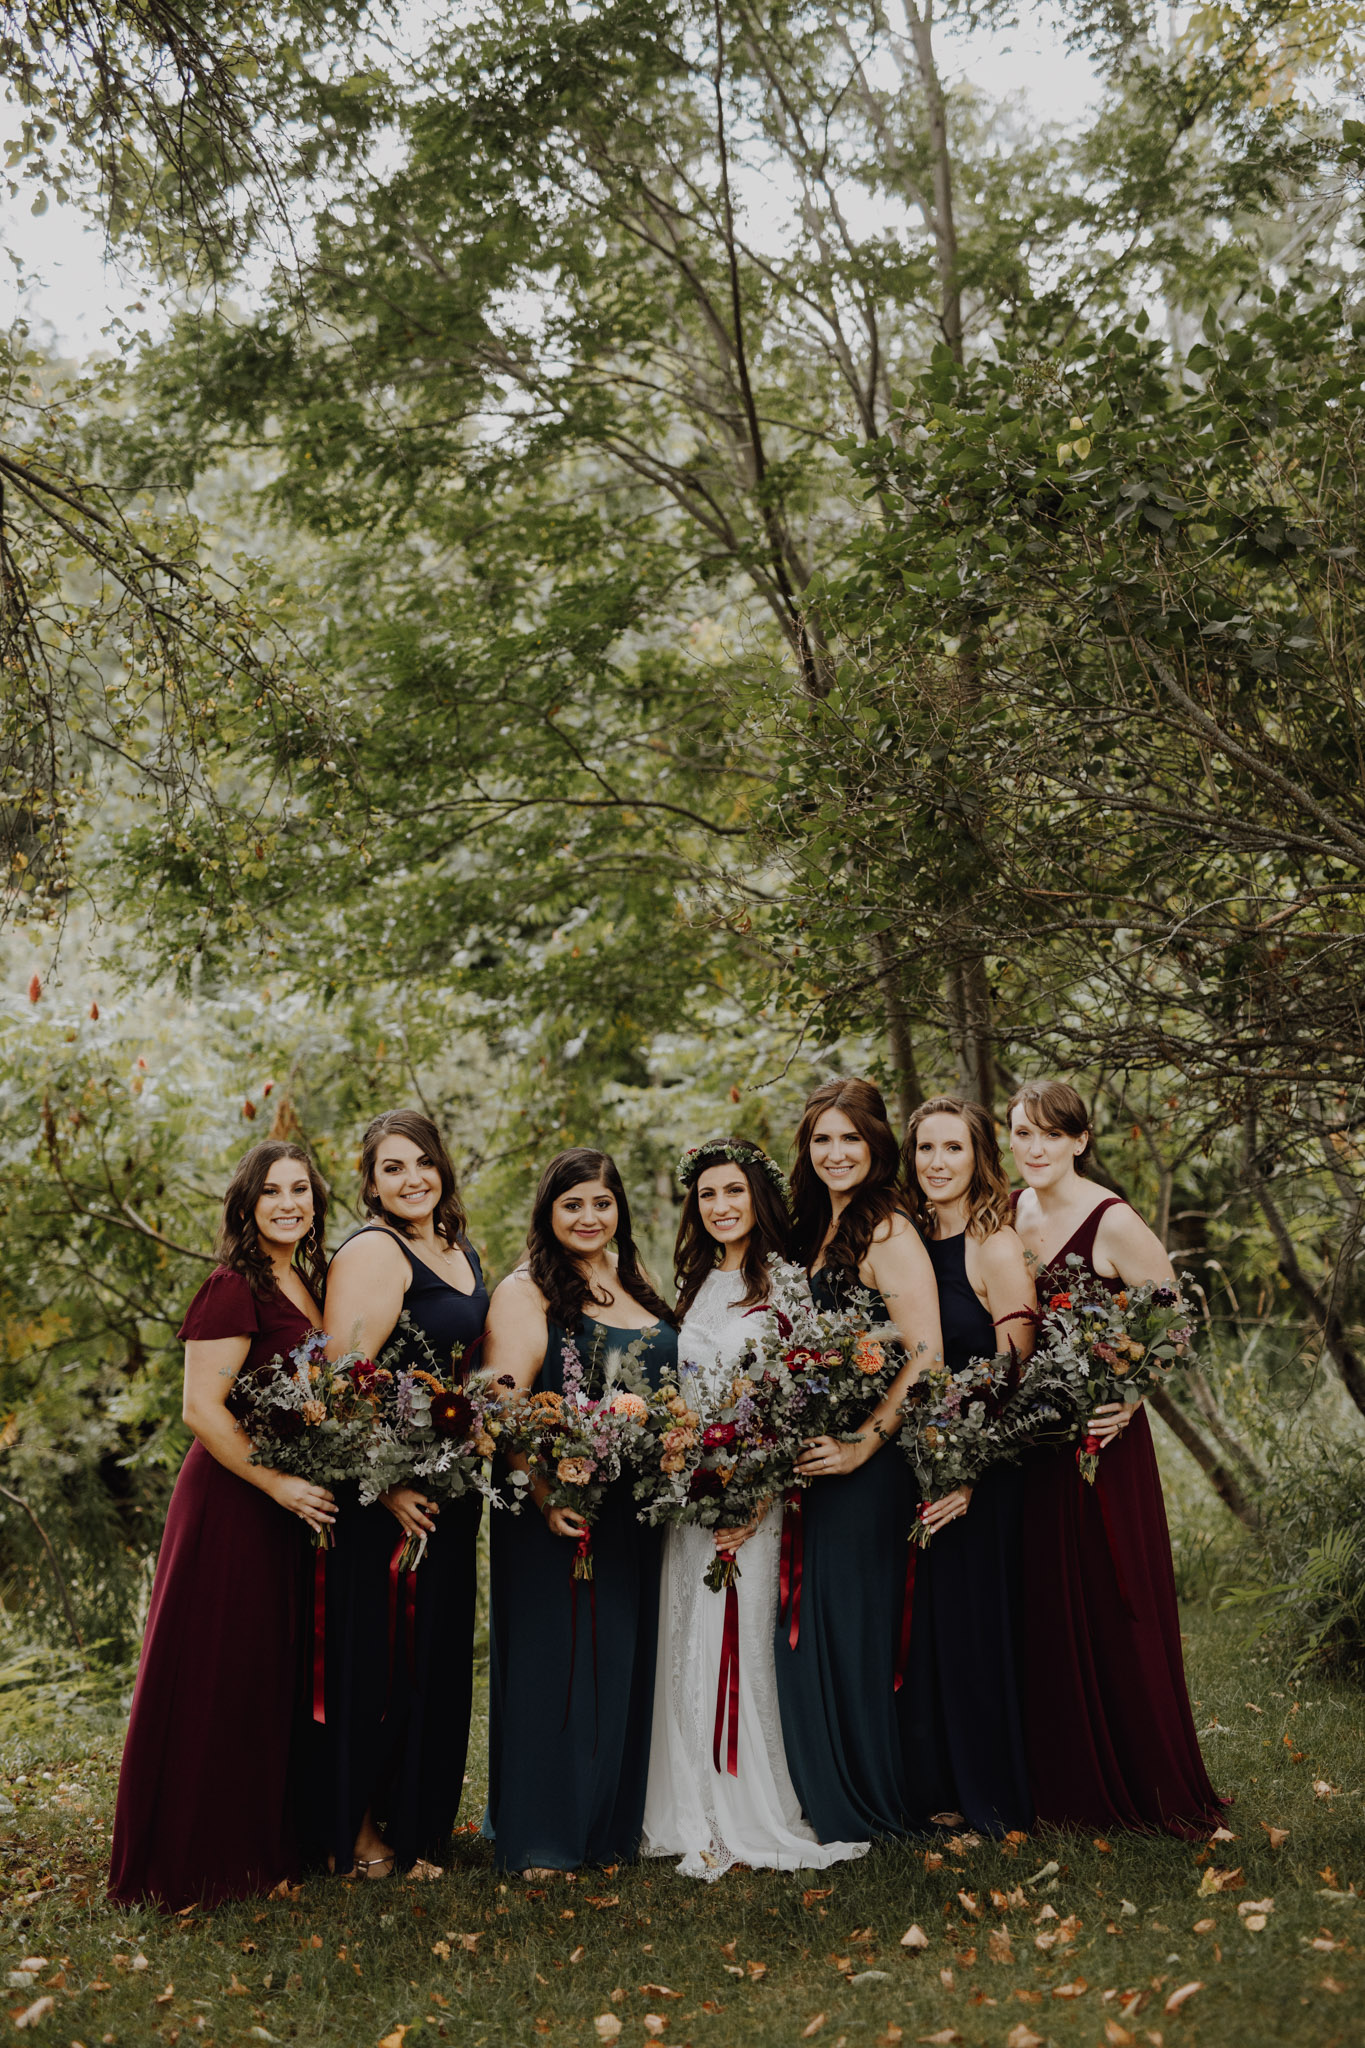 Outdoor Camp Wedding - bridal party portraits in the forest